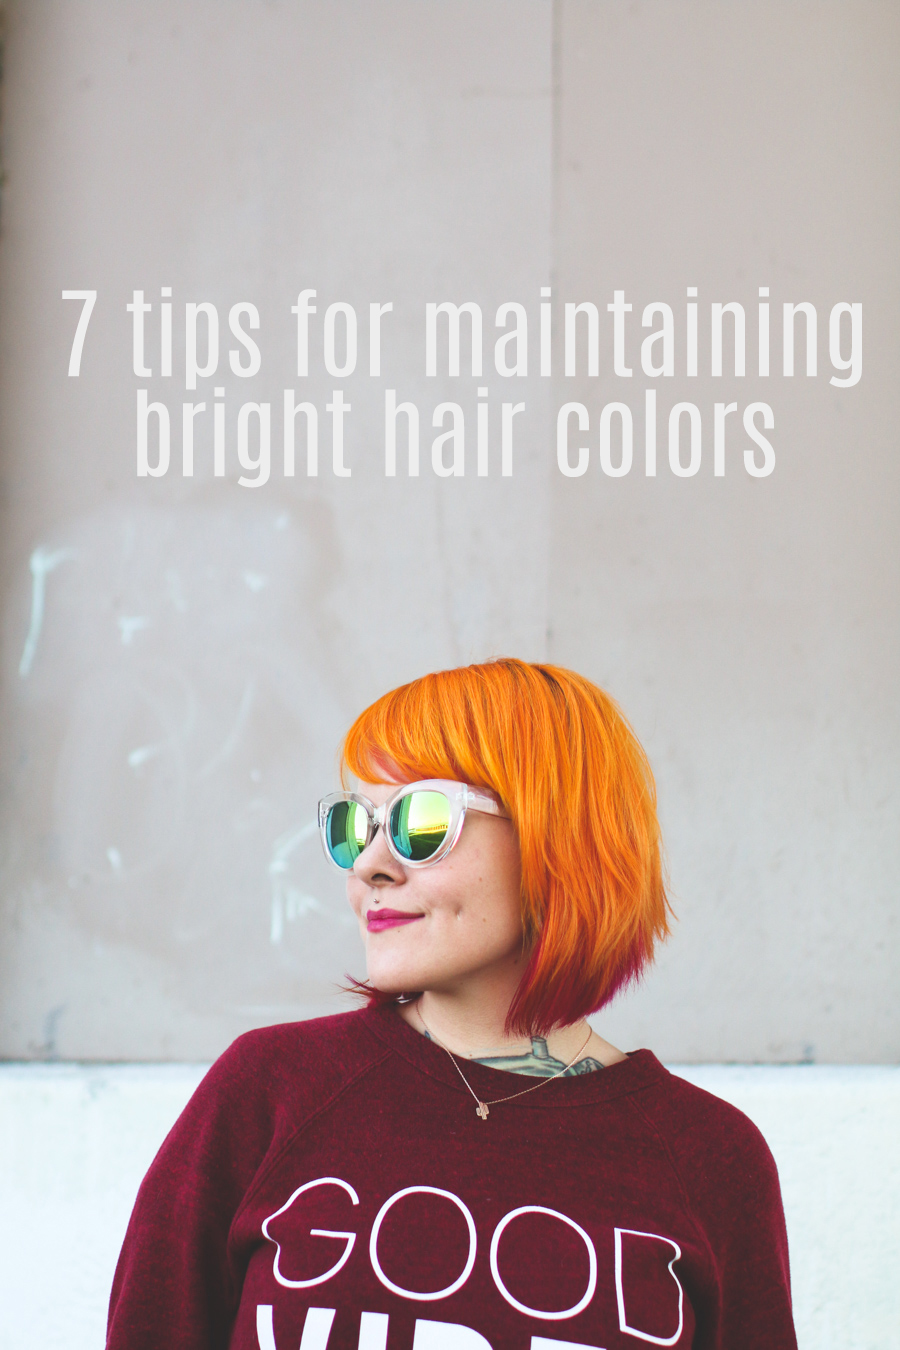 7 tips for maintaining bright hair colors - The Dainty Squid